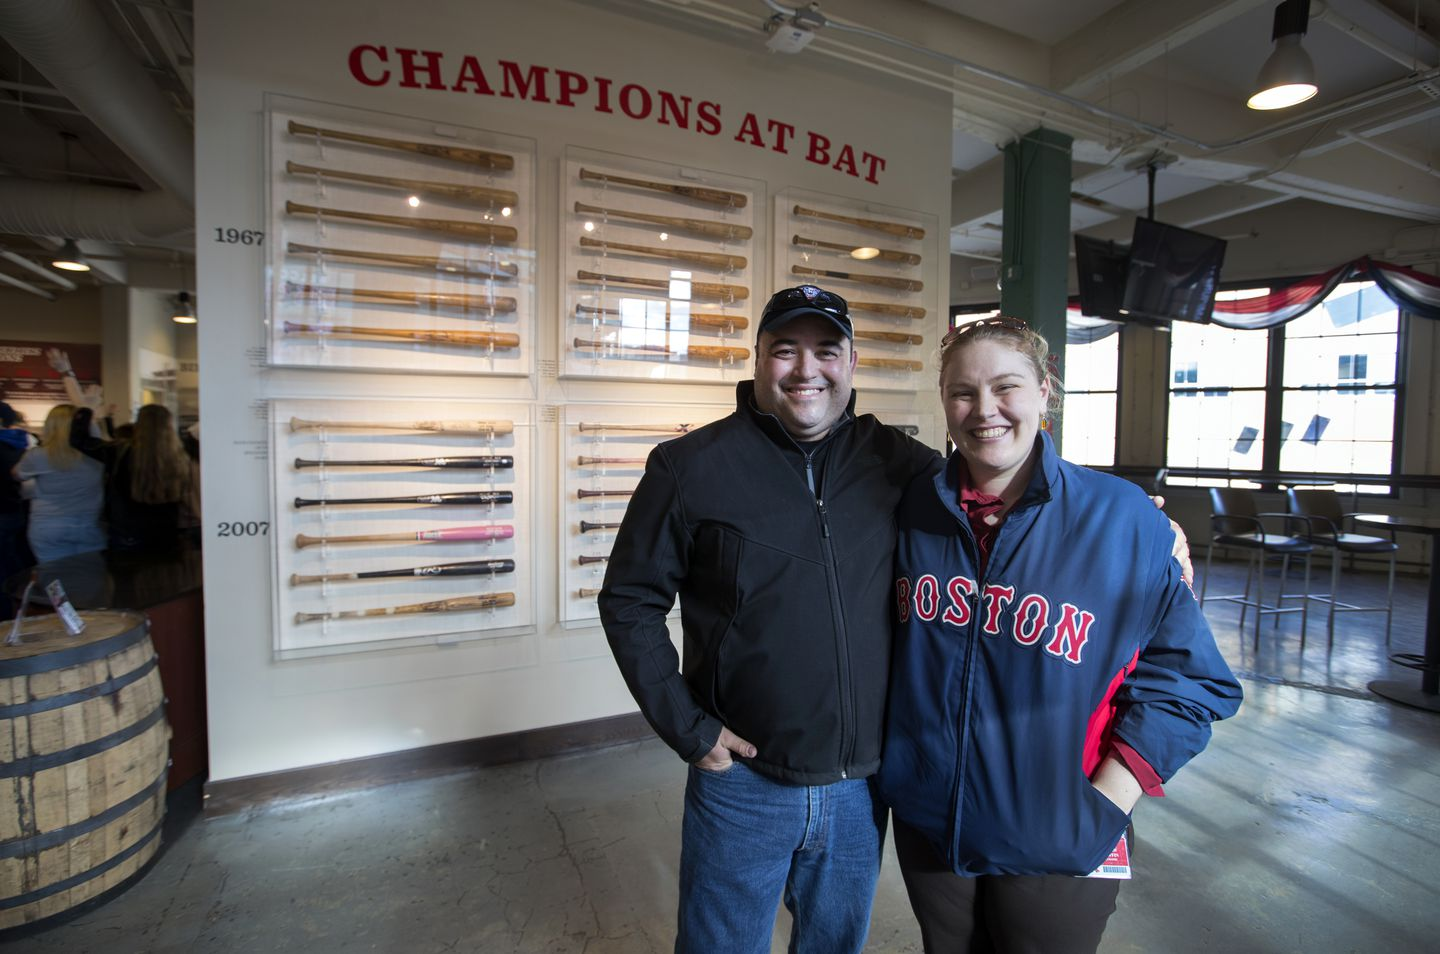 Red Sox curator Sarah Coffin (right) borrowed some of the bats for a display in the Royal Rooters Club.